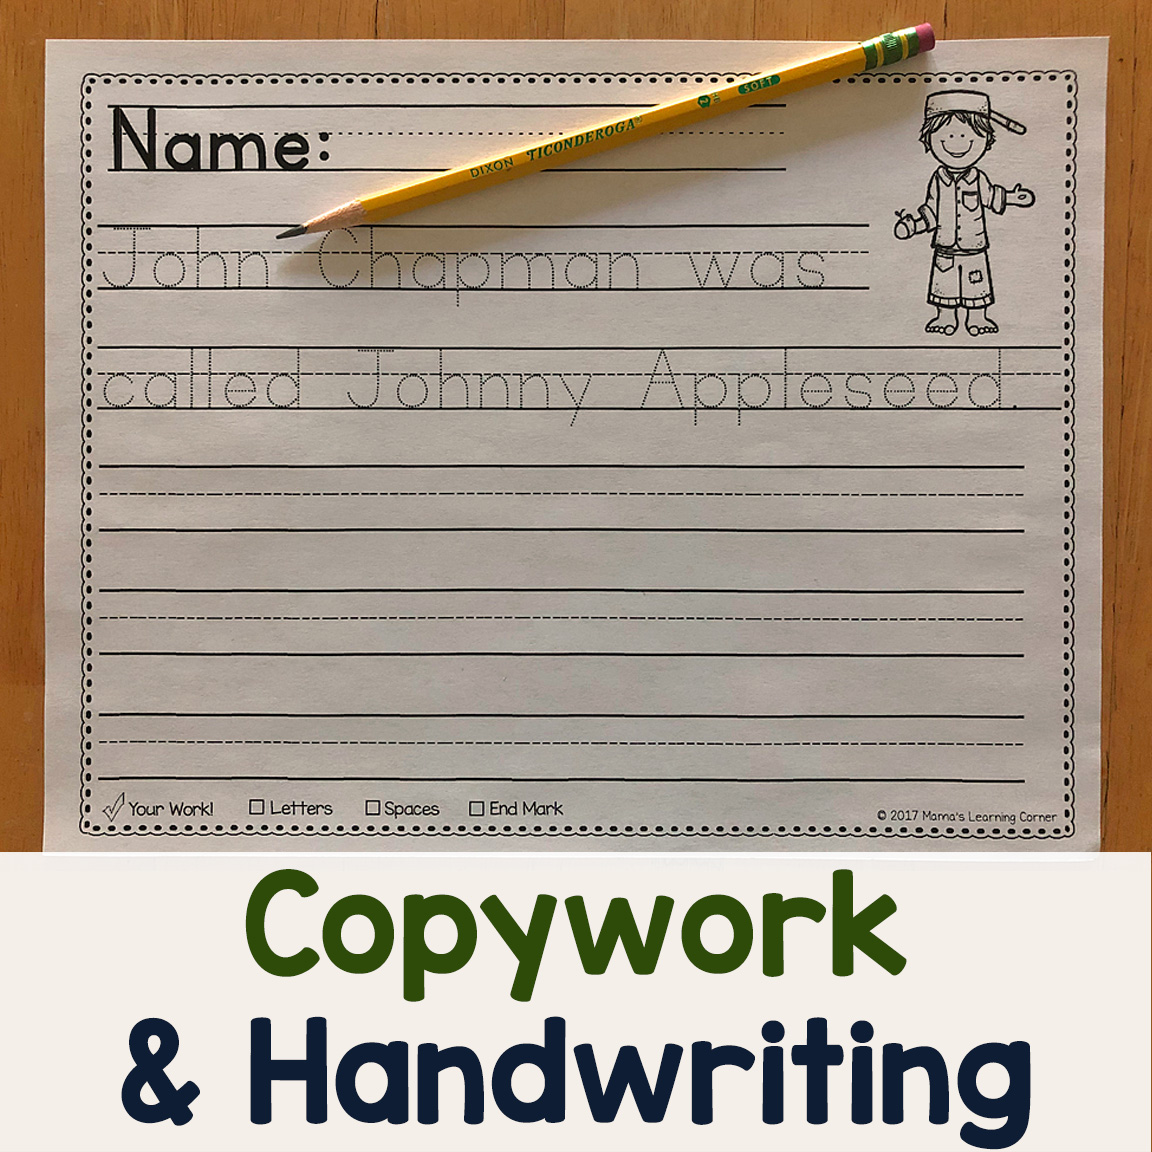 hight resolution of Copywork and Handwriting Archives - Mamas Learning Corner